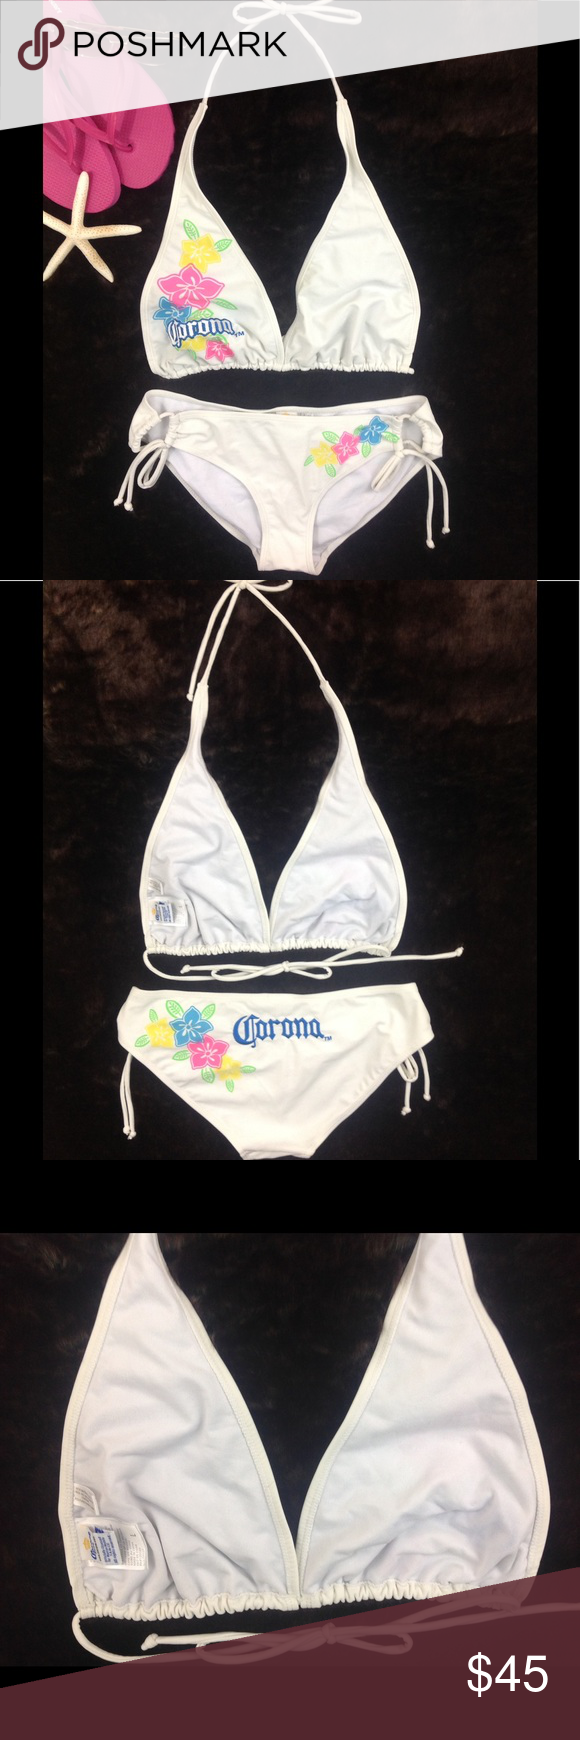 Corona Embroidered Logo White String Bikini 👙 Pre-loved. Cleaned and ready to wear. No flaws noted. Smoke free environment. Corona Swim Bikinis